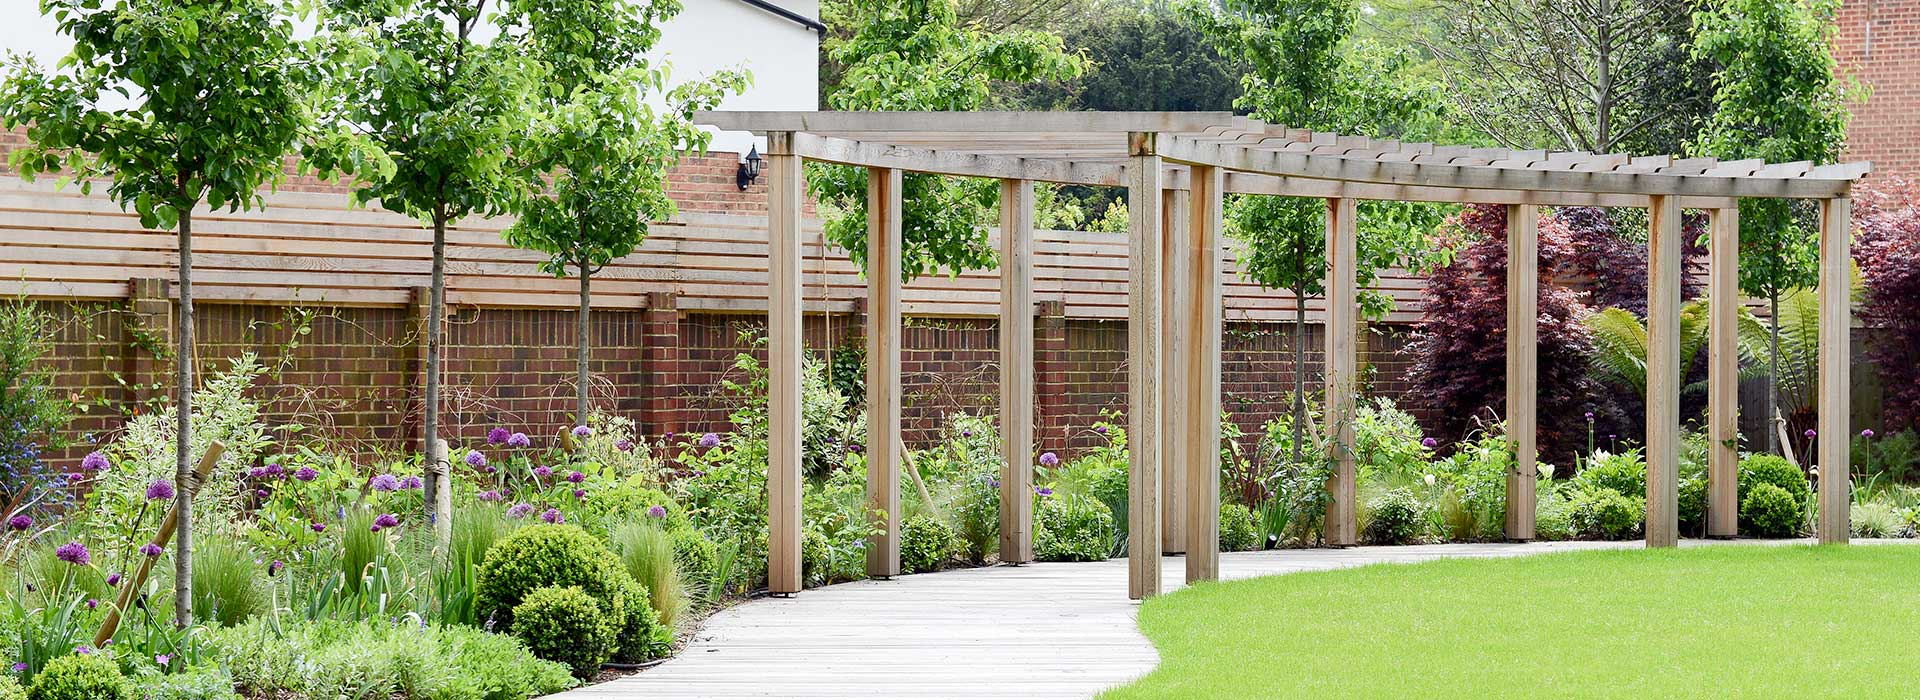 garden design in london 7